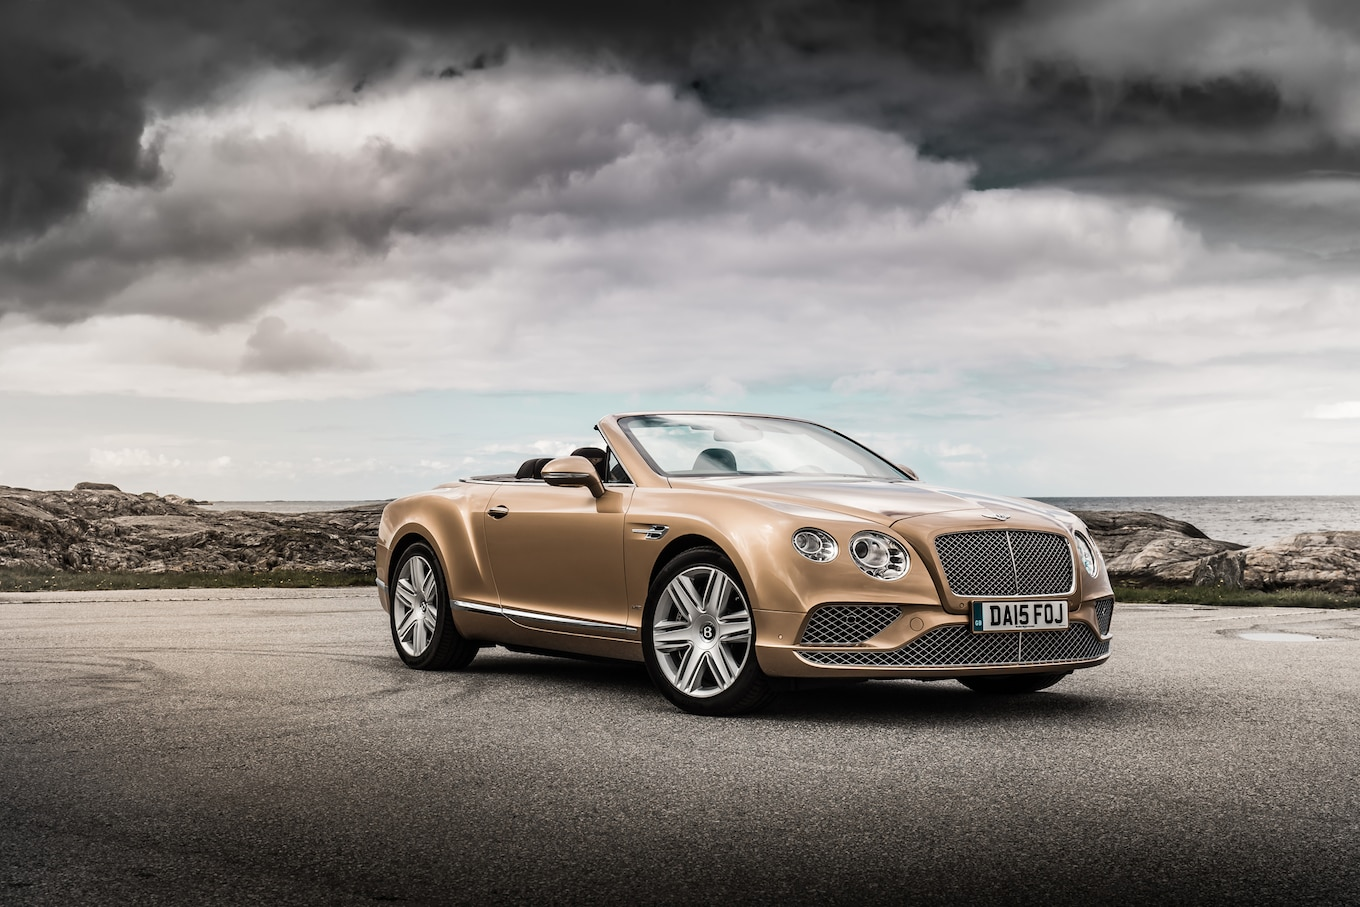 Off Road Cars Hd Wallpapers 2016 Bentley Continental Gt First Drive Review Motor Trend